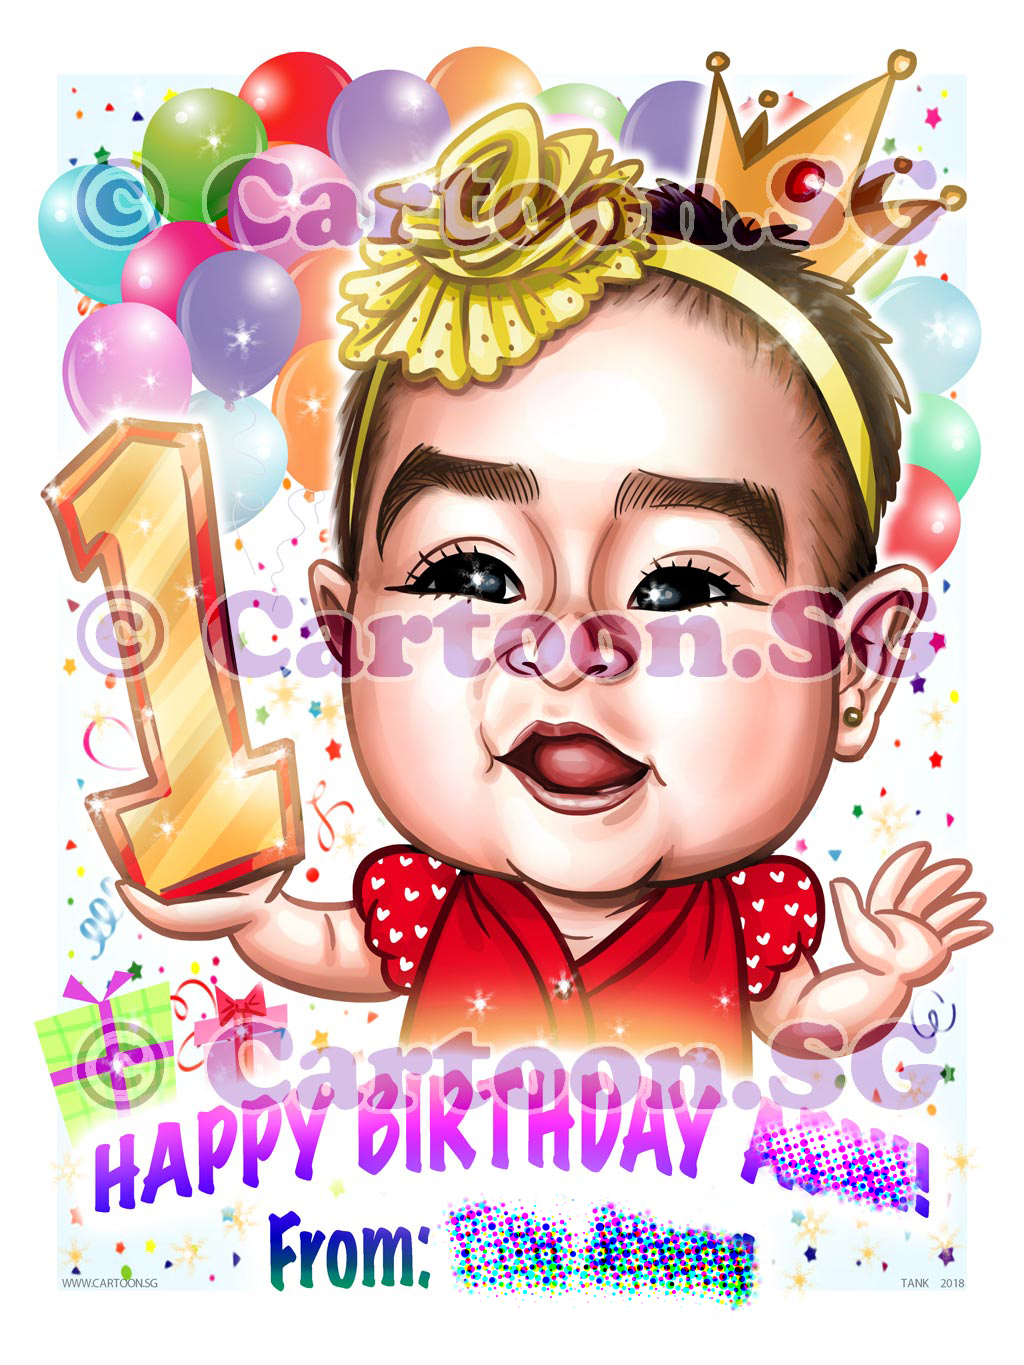 20180301-Caricature-Singapore-digital-birthday-baby-girl-gift-princess-crown.jpg